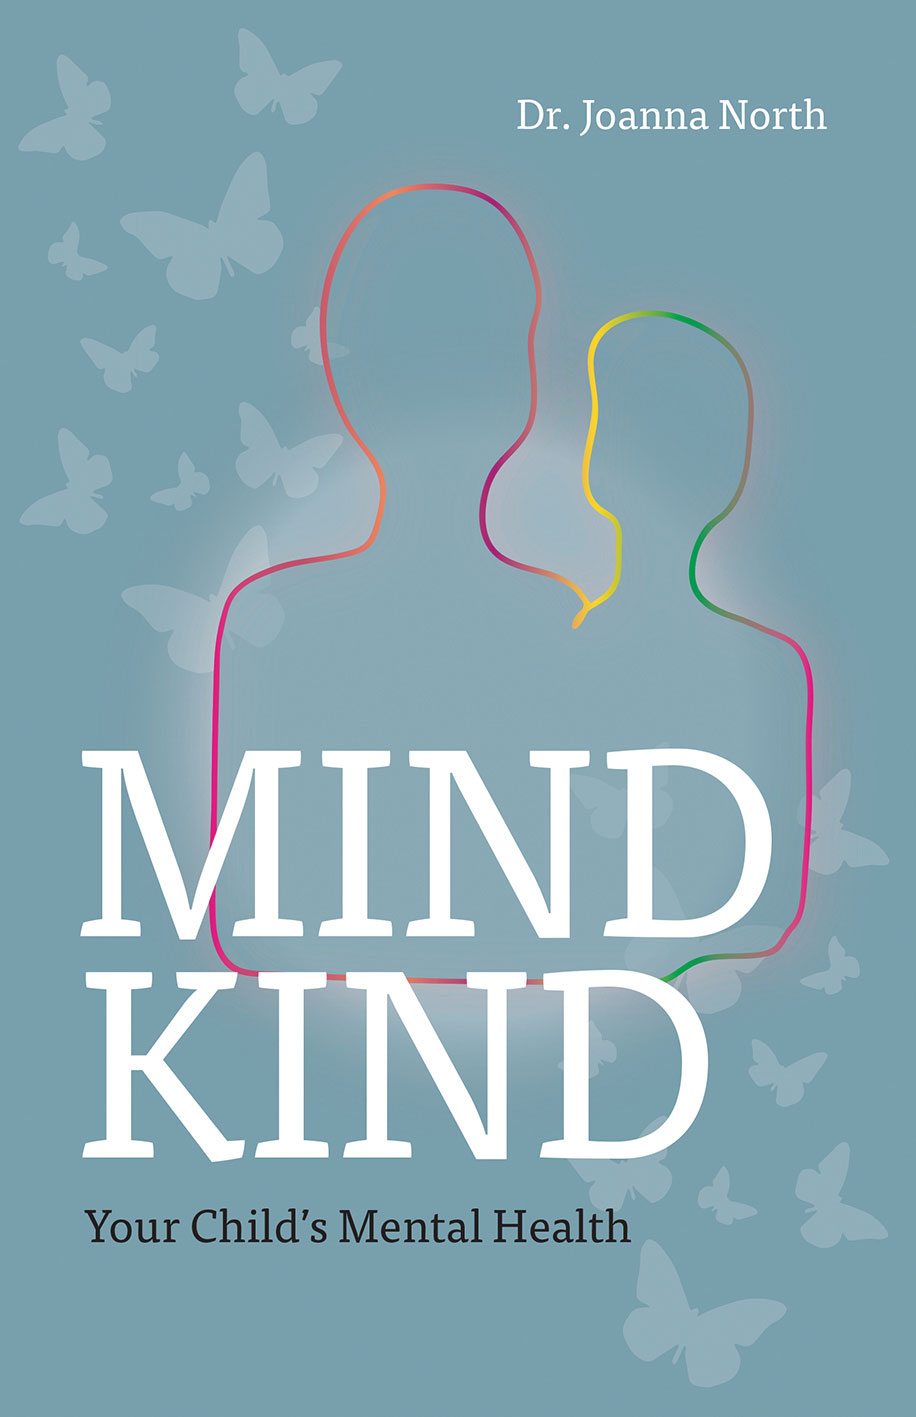 Mind Kind - Your Child's Mental Health by Dr Joanna North